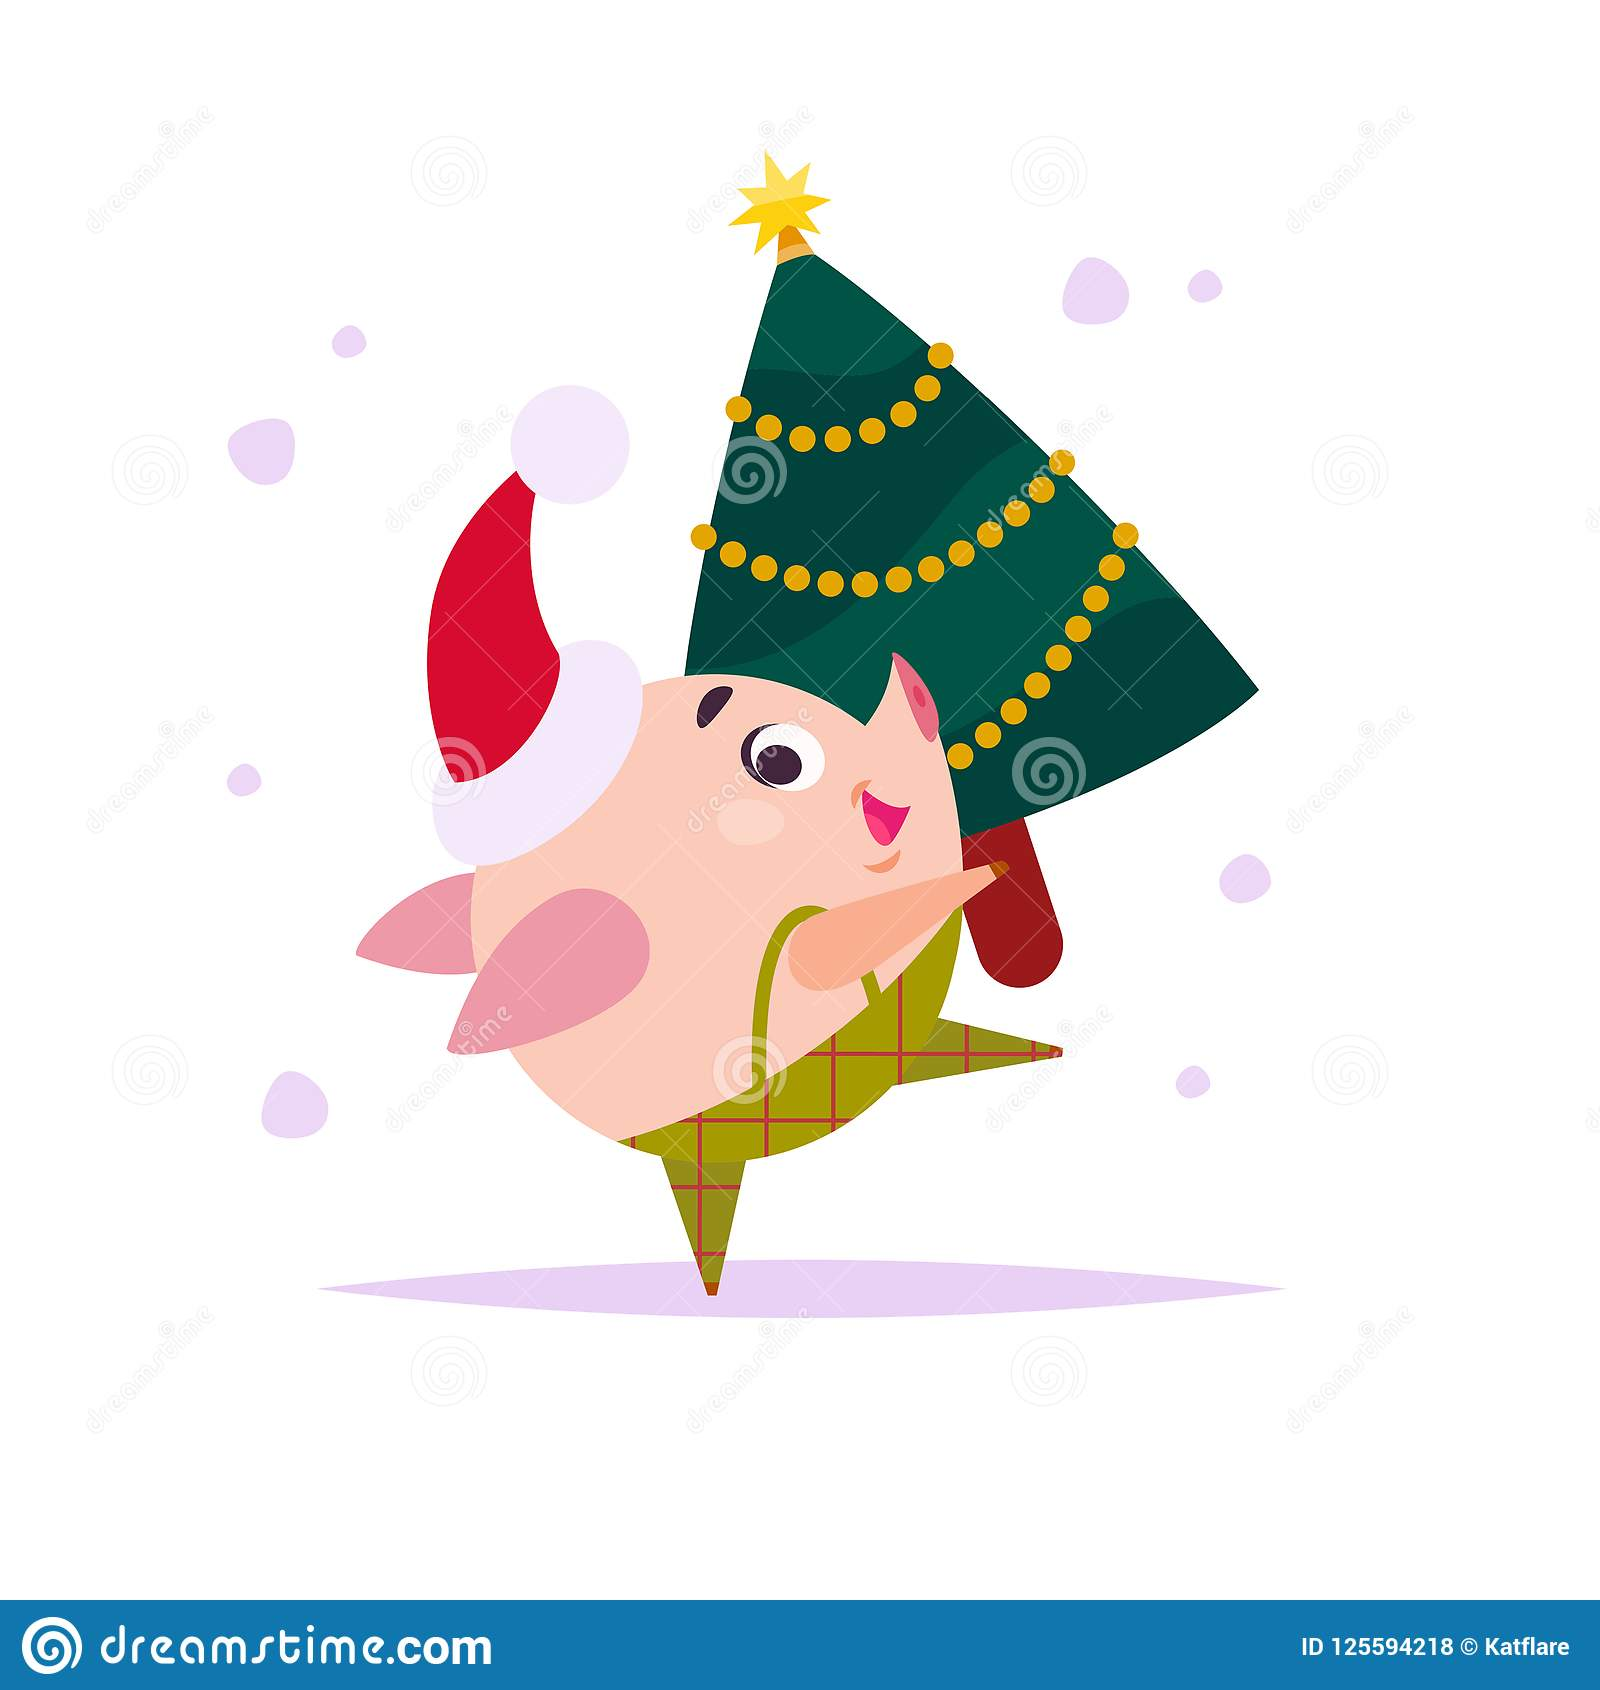 vector flat illustration of funny little pig elf in santa hat carrying decorated small new year